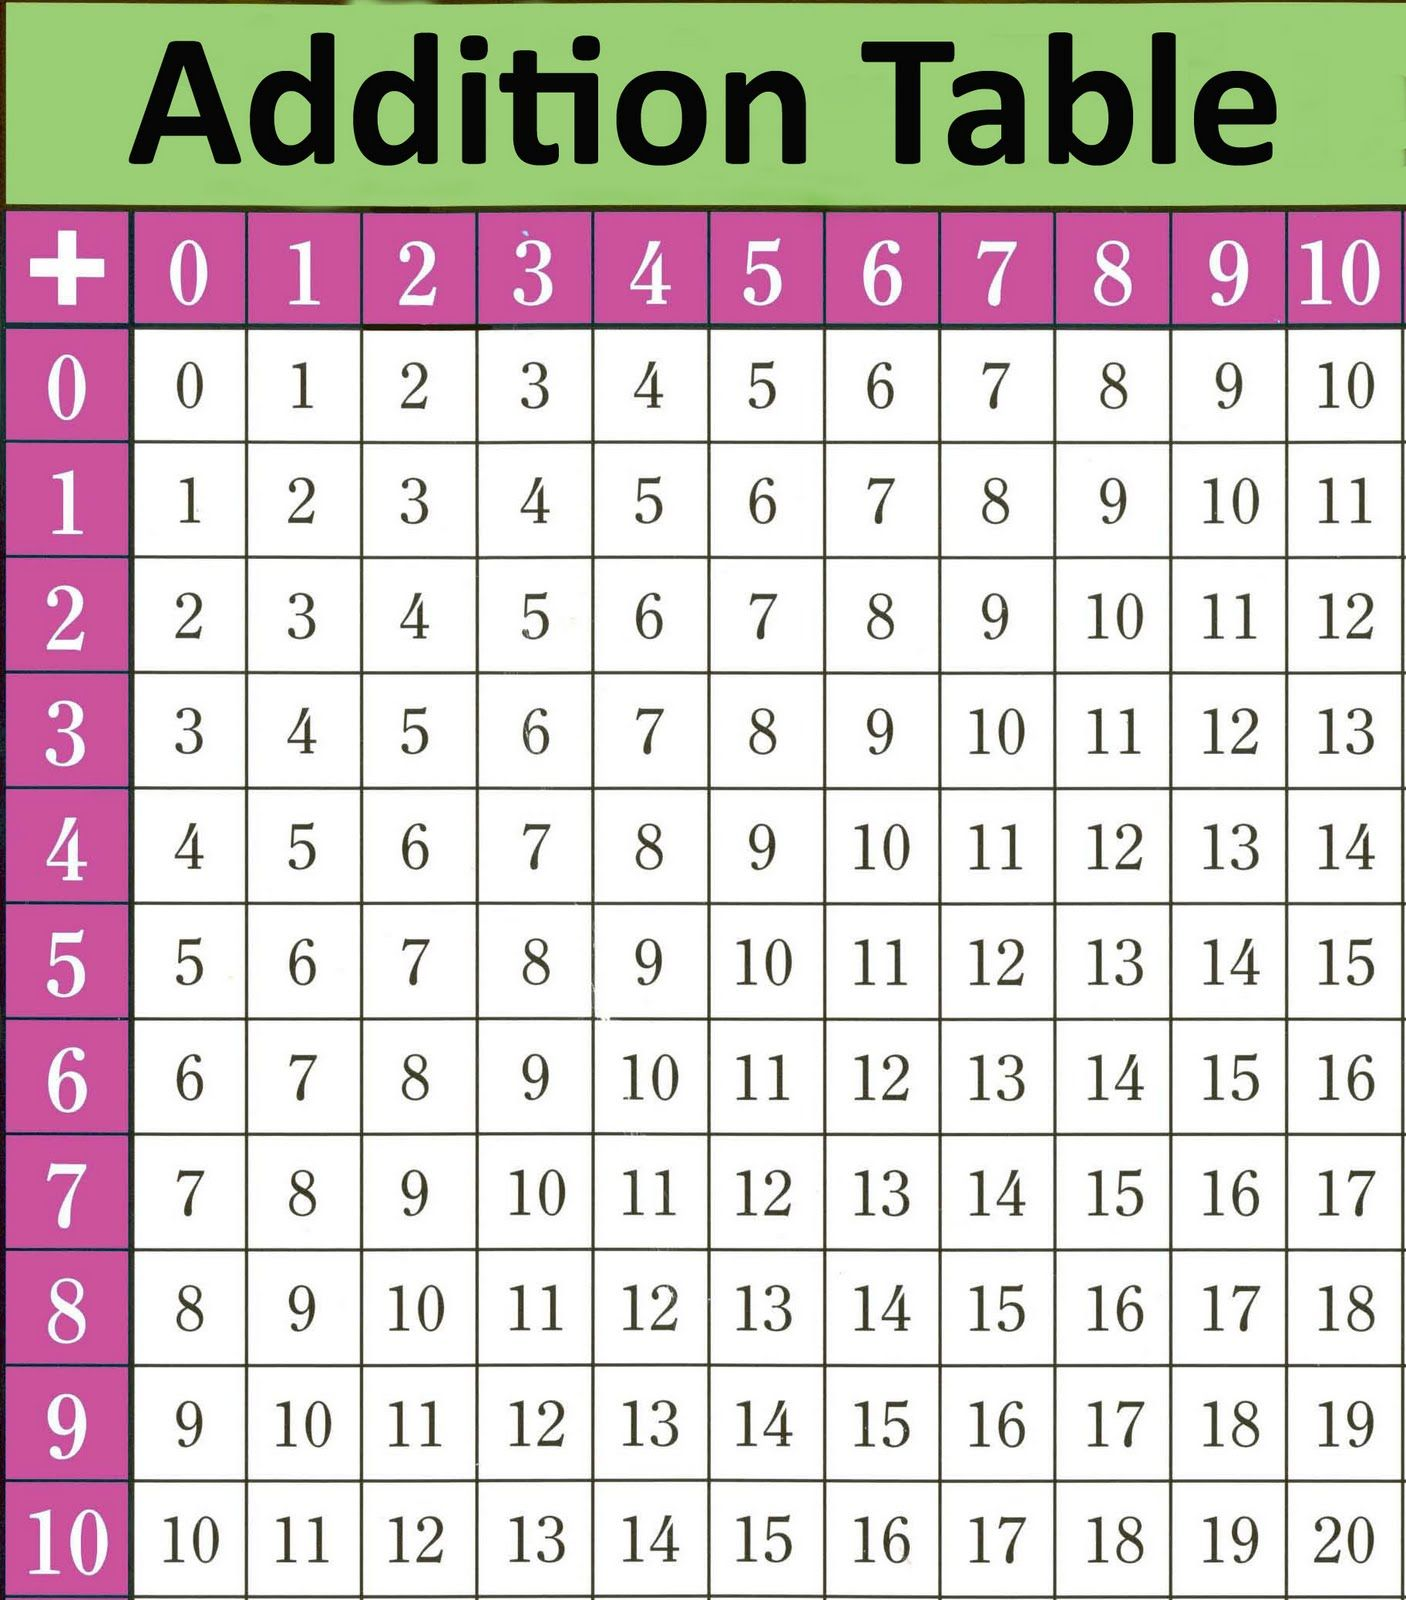 Addition chart ms barrett 39 s 3940 math blog reflecting - Table d addition a completer ...